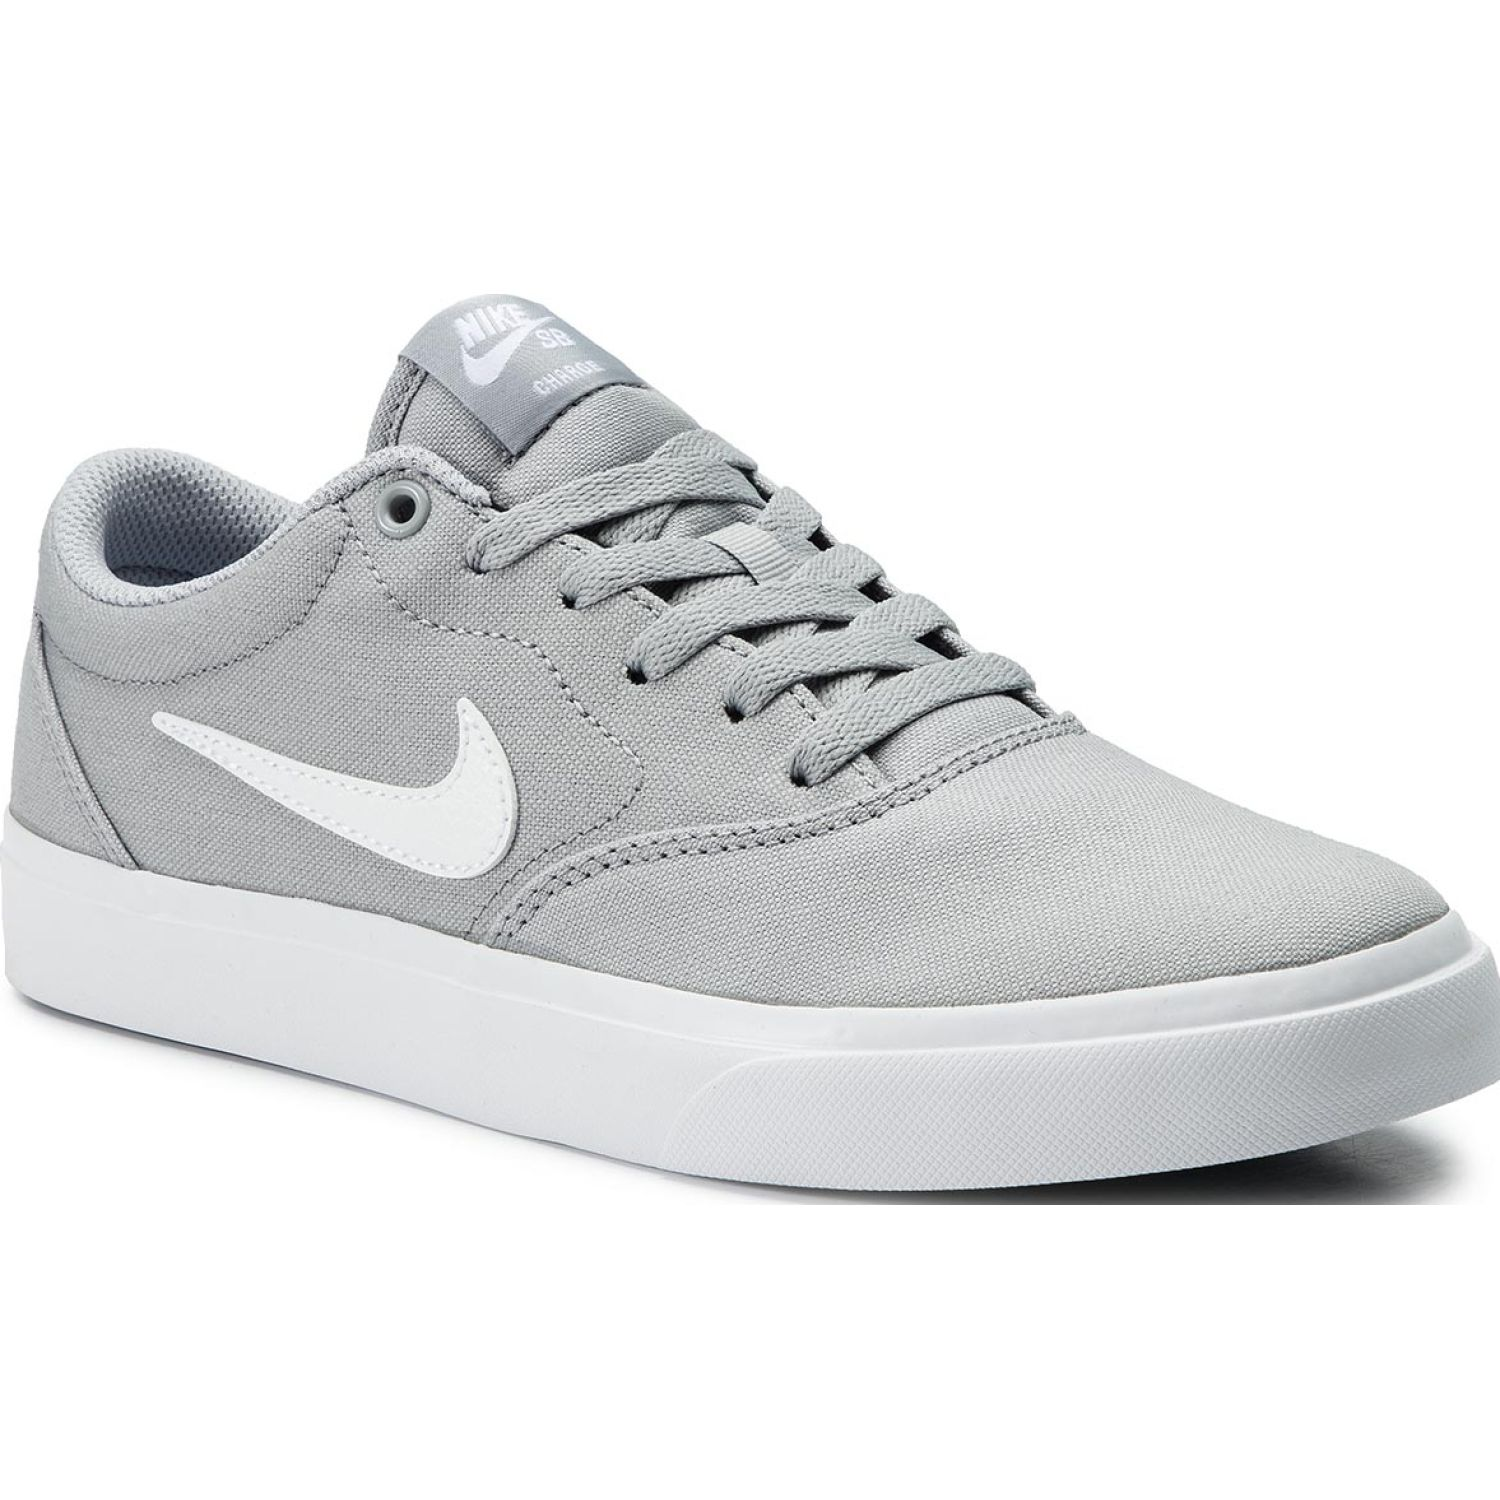 Nike nike sb charge slr Gris / blanco Walking